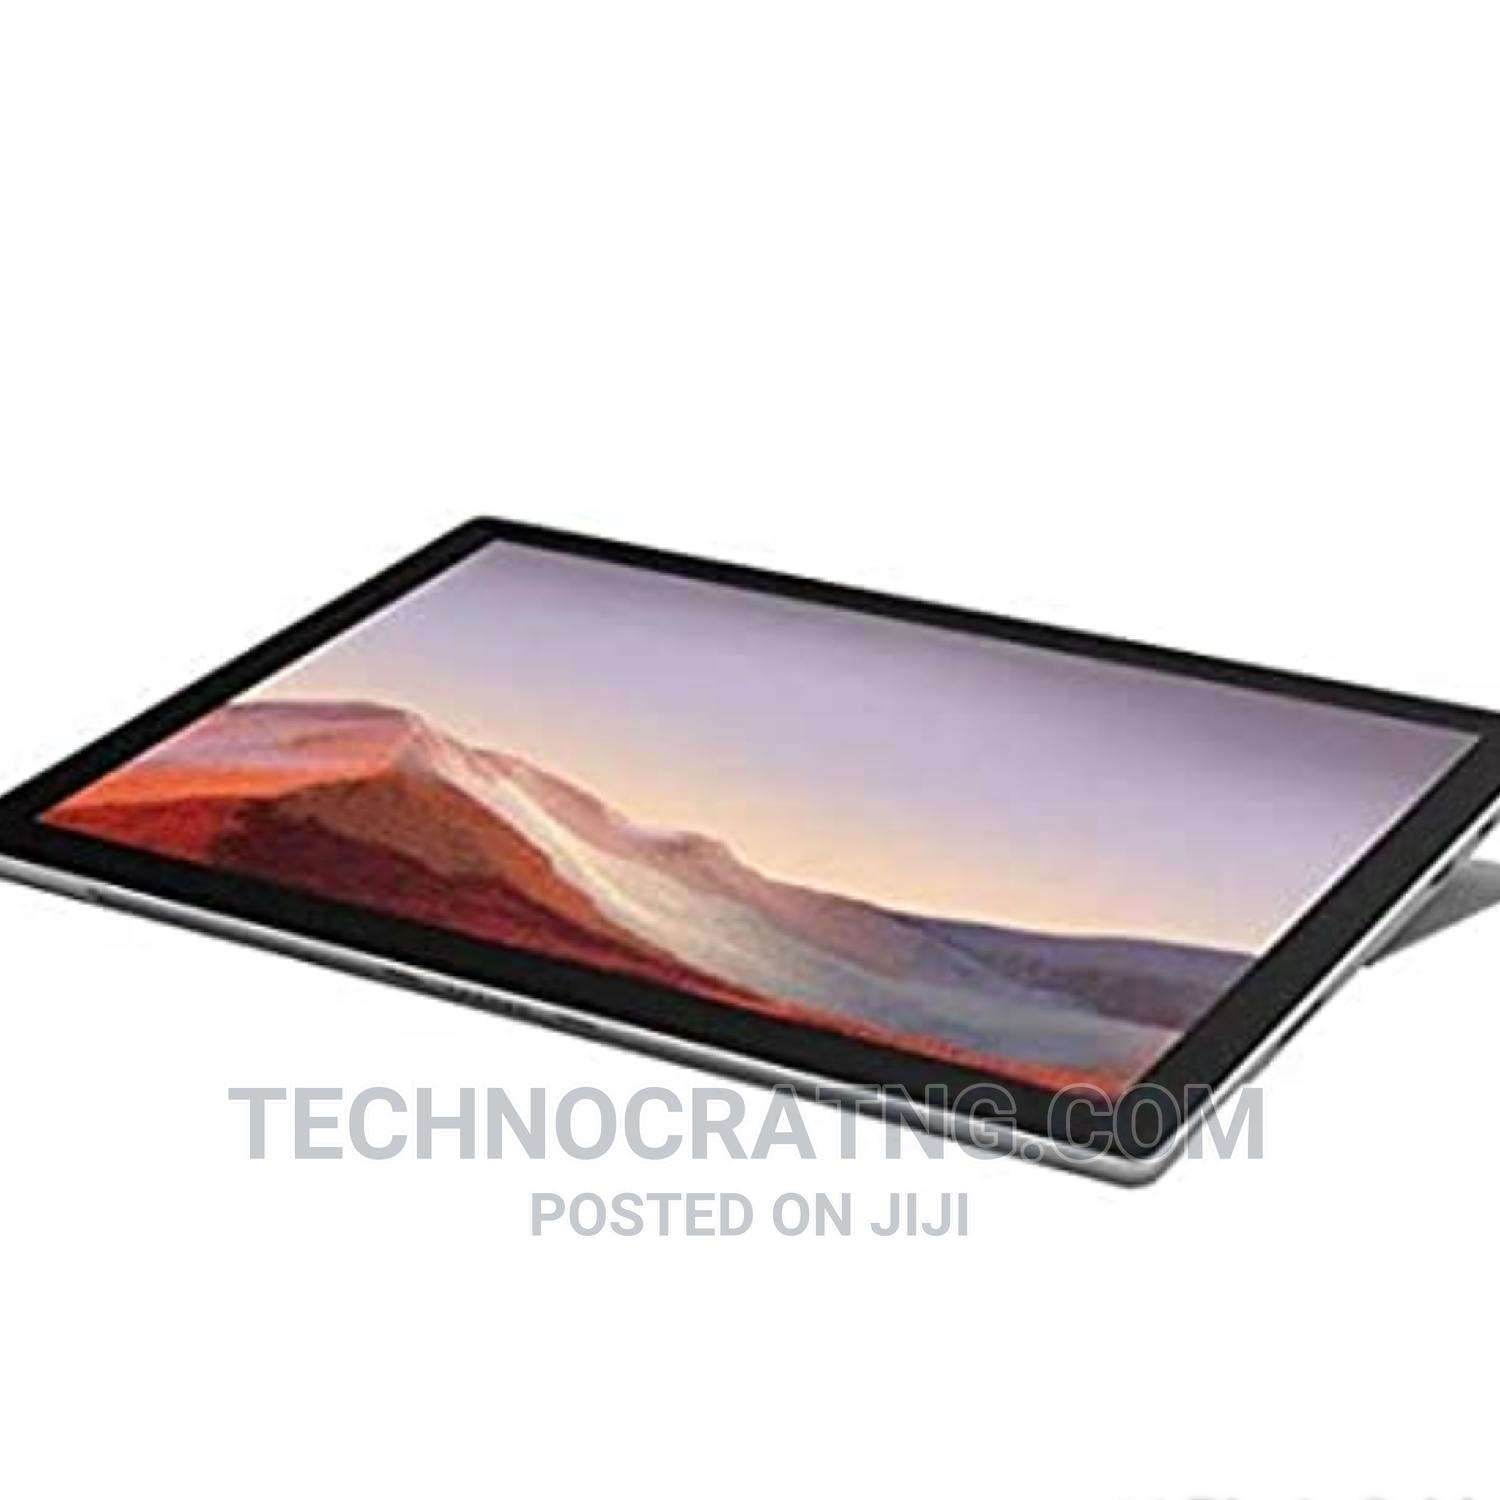 New Laptop Microsoft Surface Pro 16GB Intel Core I7 512GB   Laptops & Computers for sale in Lekki, Lagos State, Nigeria